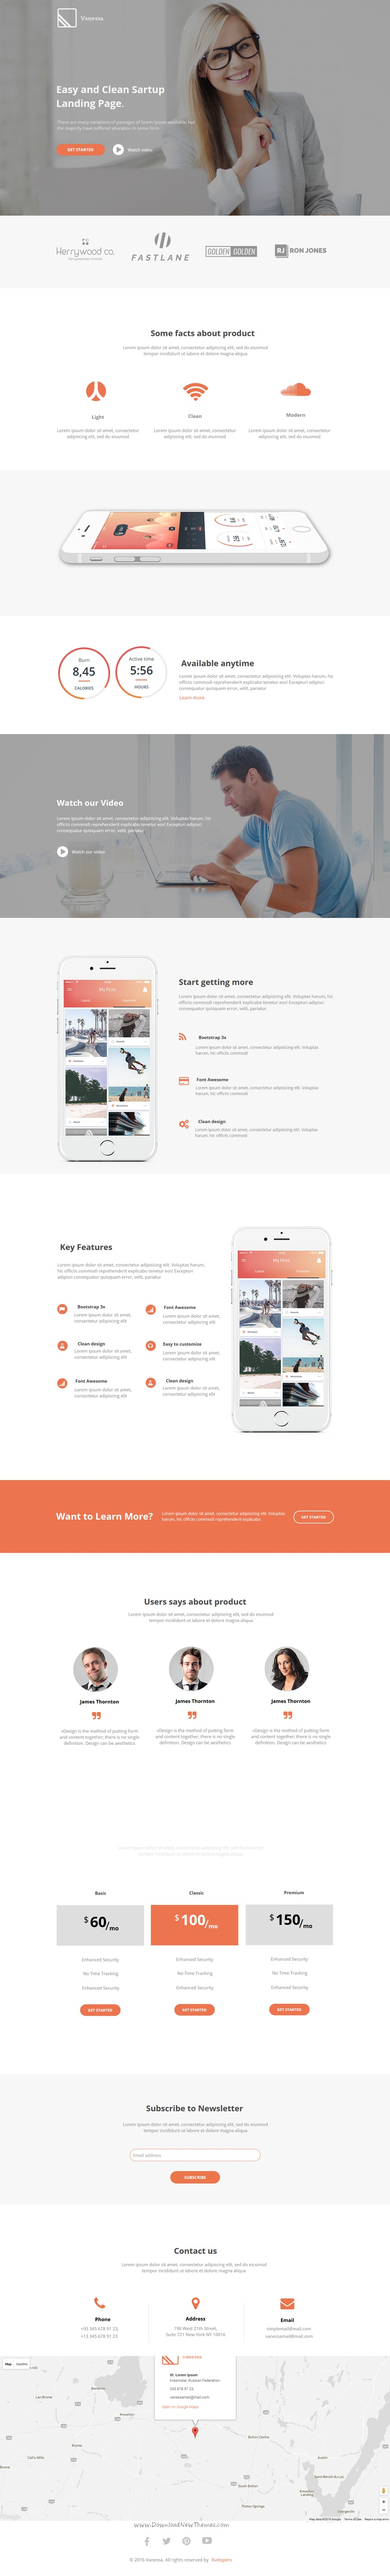 Vanessa is light and modern design premium #Instapage #landingpage template for #startup or apps website download now➯ https://themeforest.net/item/vanessa-easy-startup-instapage-landing-page-/16955033?ref=Datasata